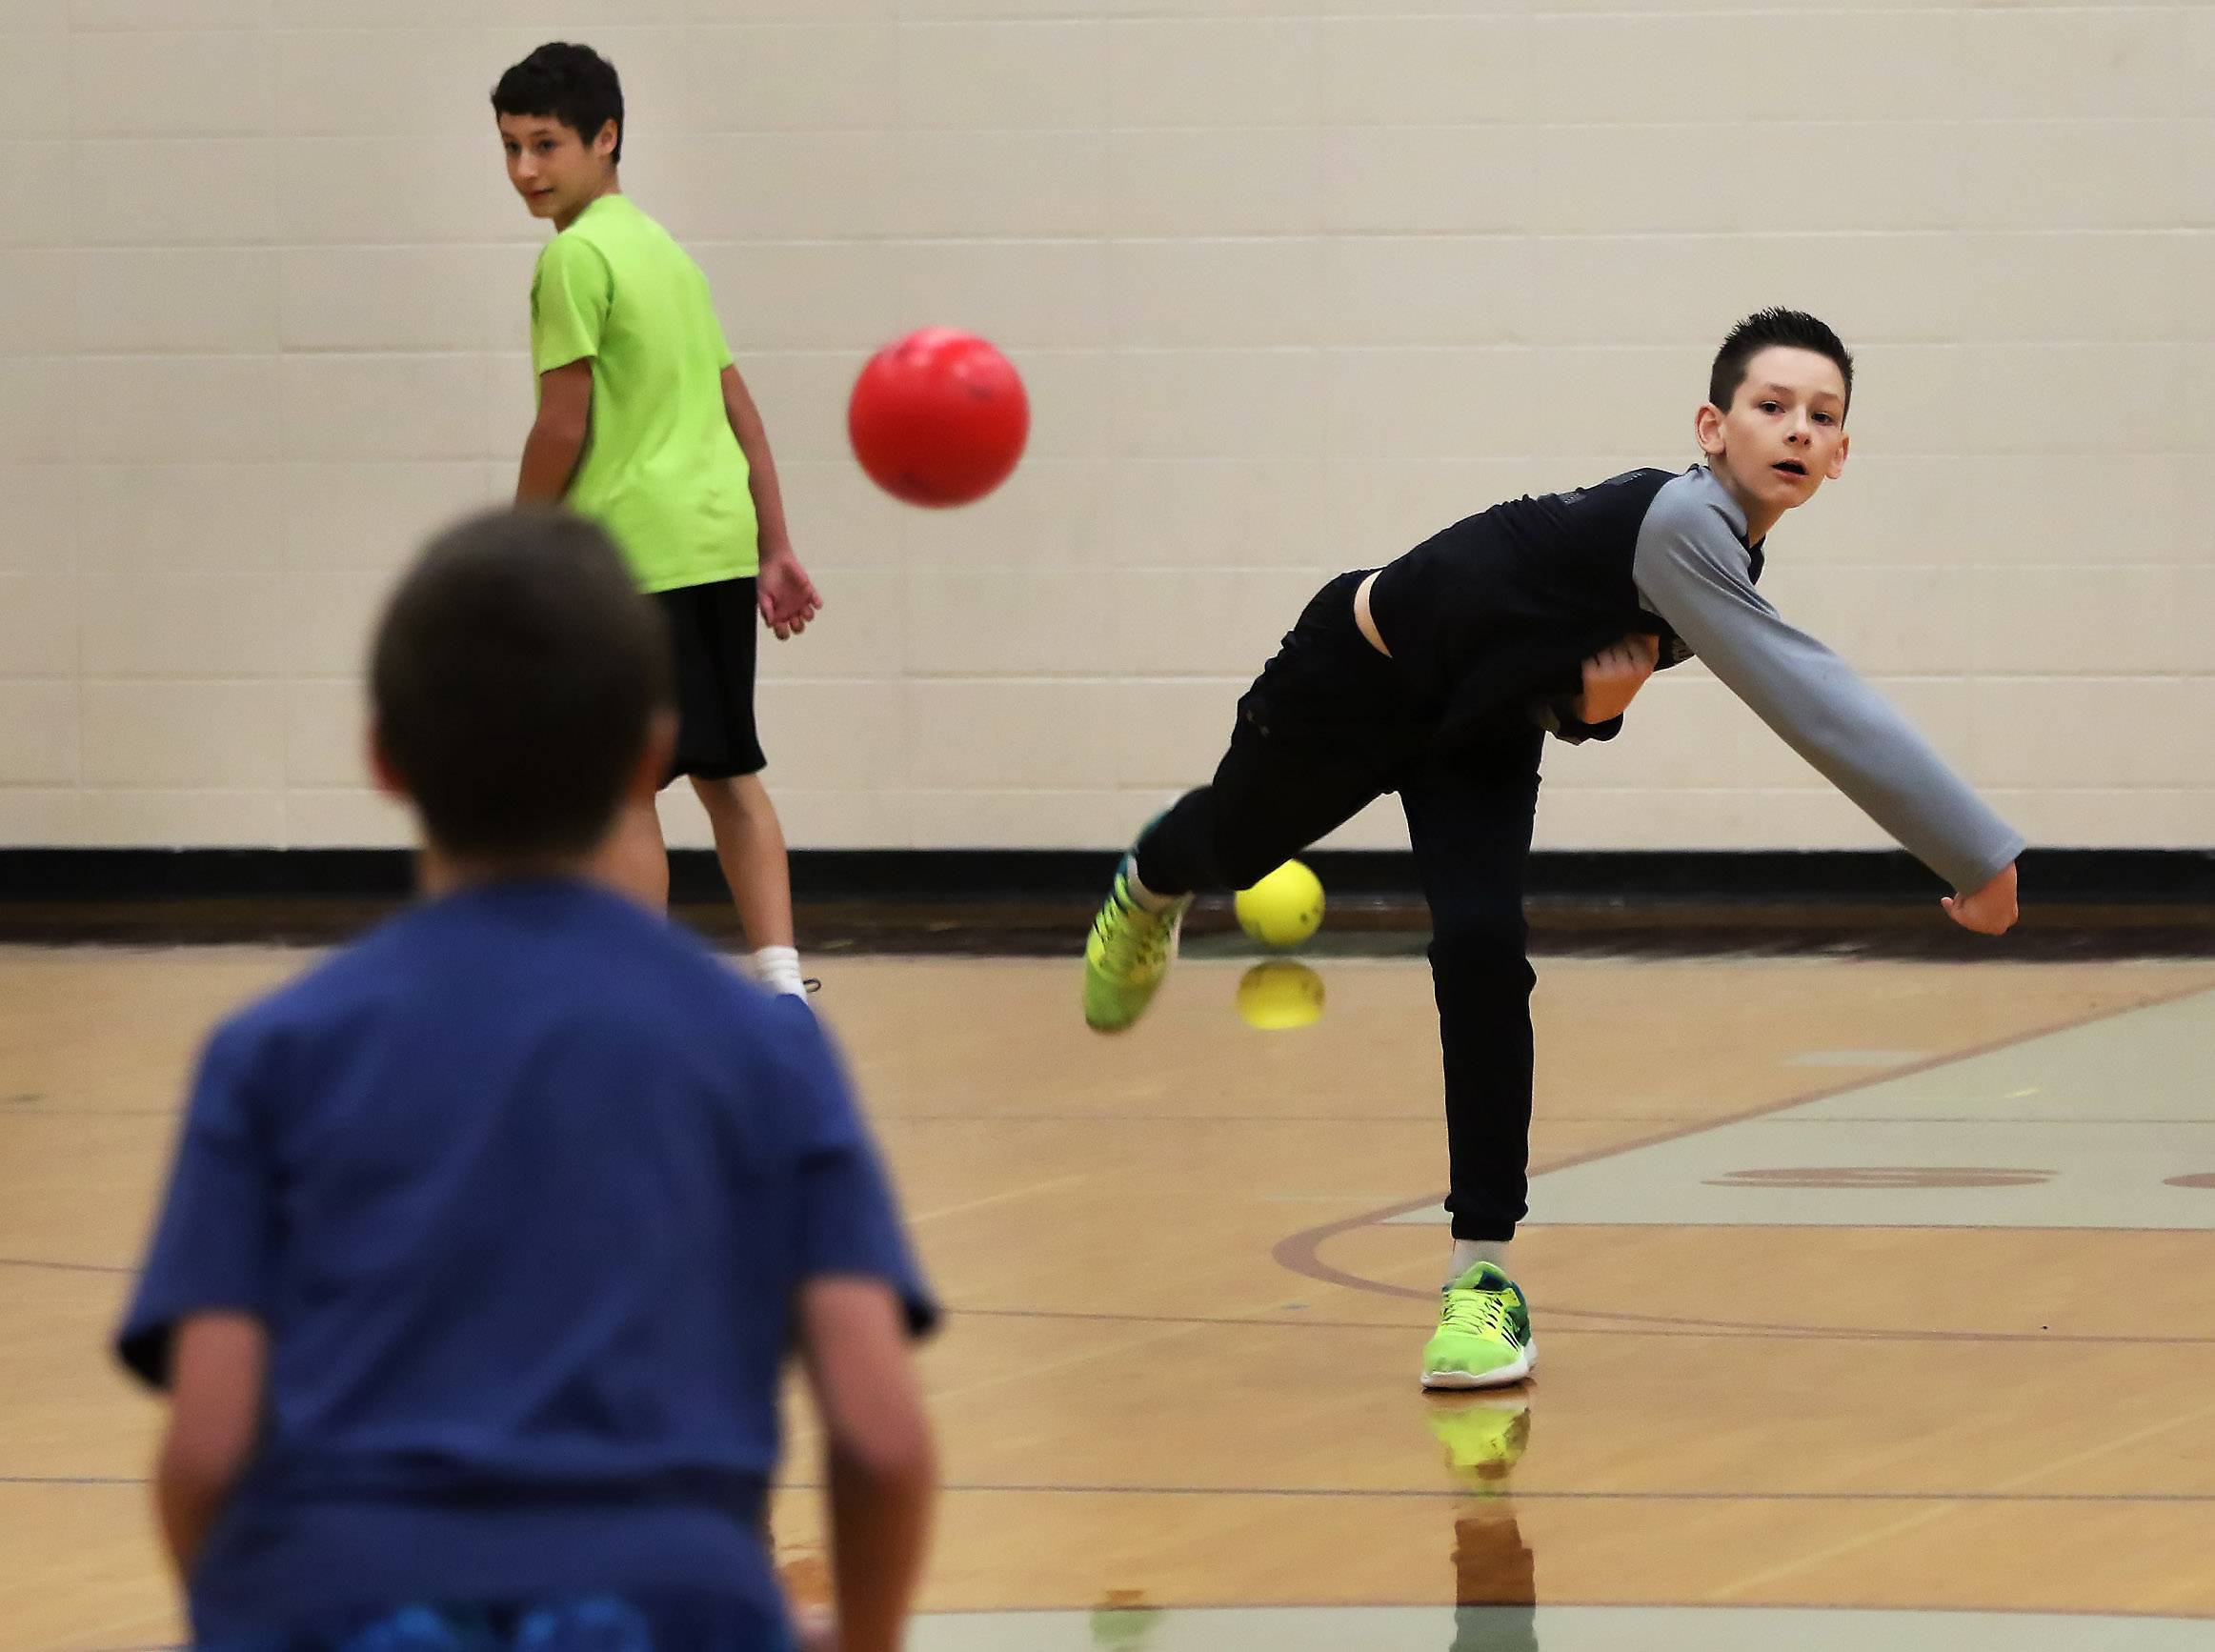 Eighth grader Noah Brondyke of Average Joe's throws against a player from Team Callero during a charity dodgeball tournament Thursday at Lake Zurich Middle School South. The event was hosted by the student council to benefit NephCure, a nonprofit organization that provides support for people who suffer from kidney disease.